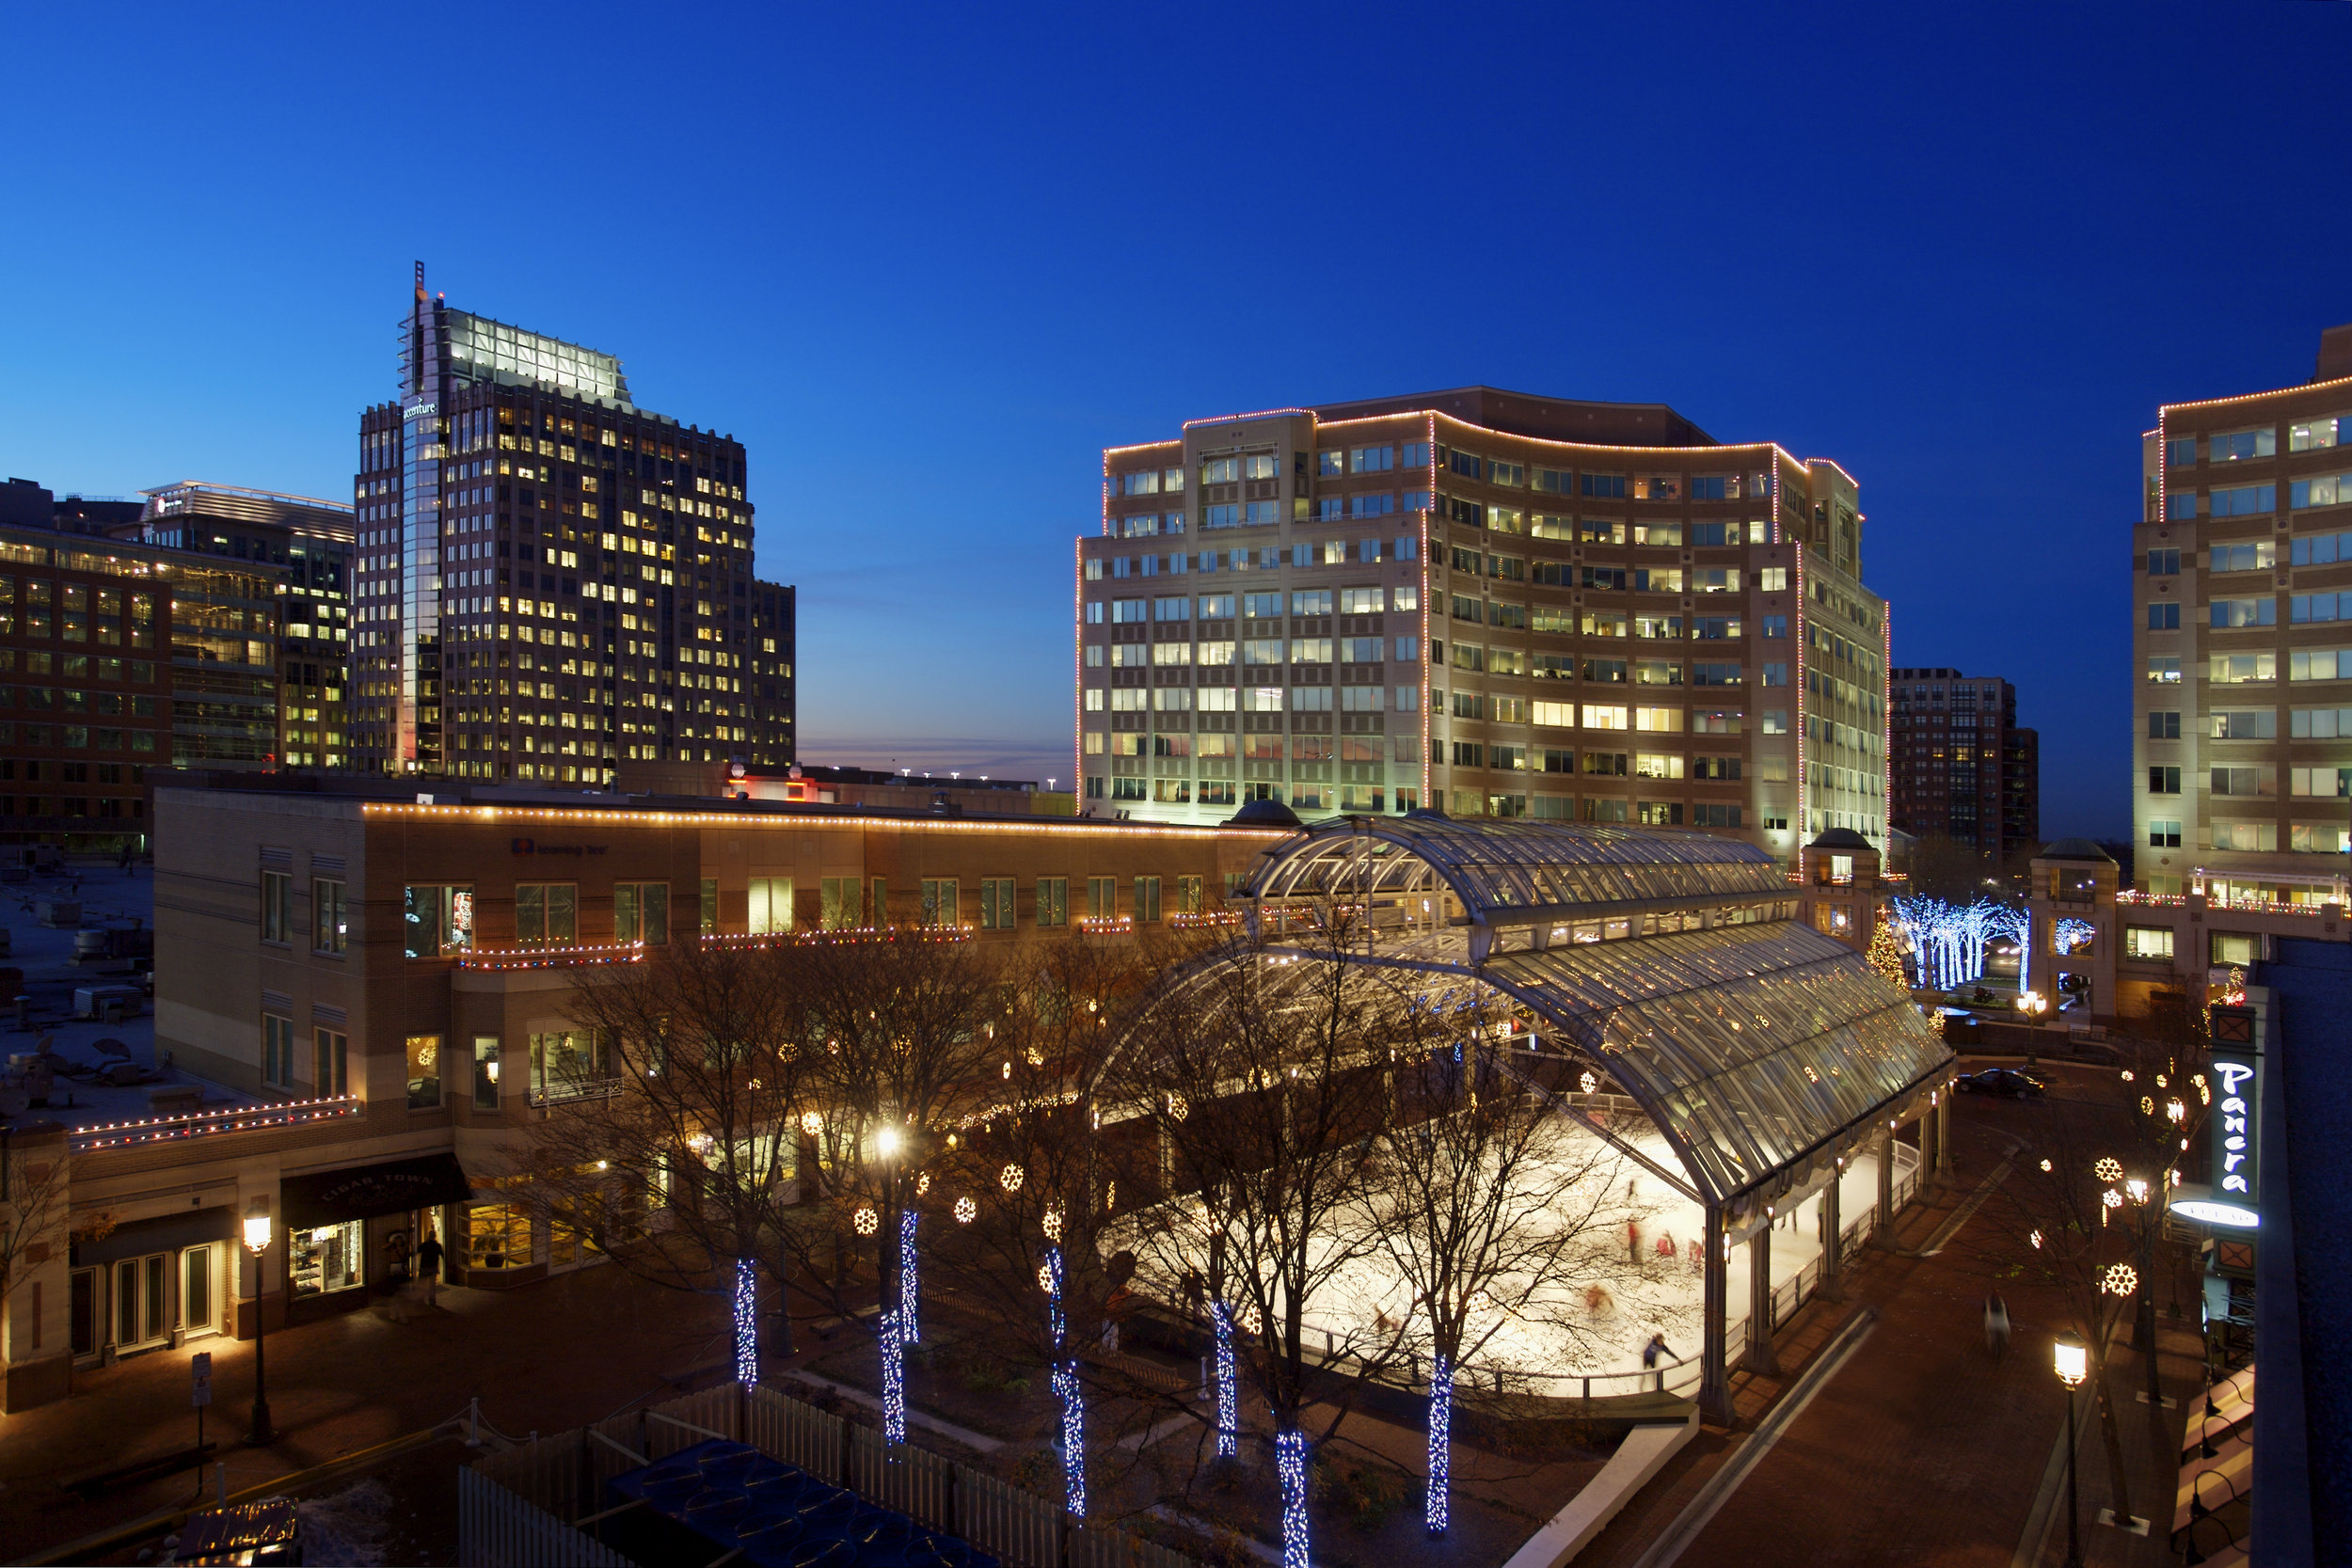 Pavilion-and-buildings-at-night.jpg